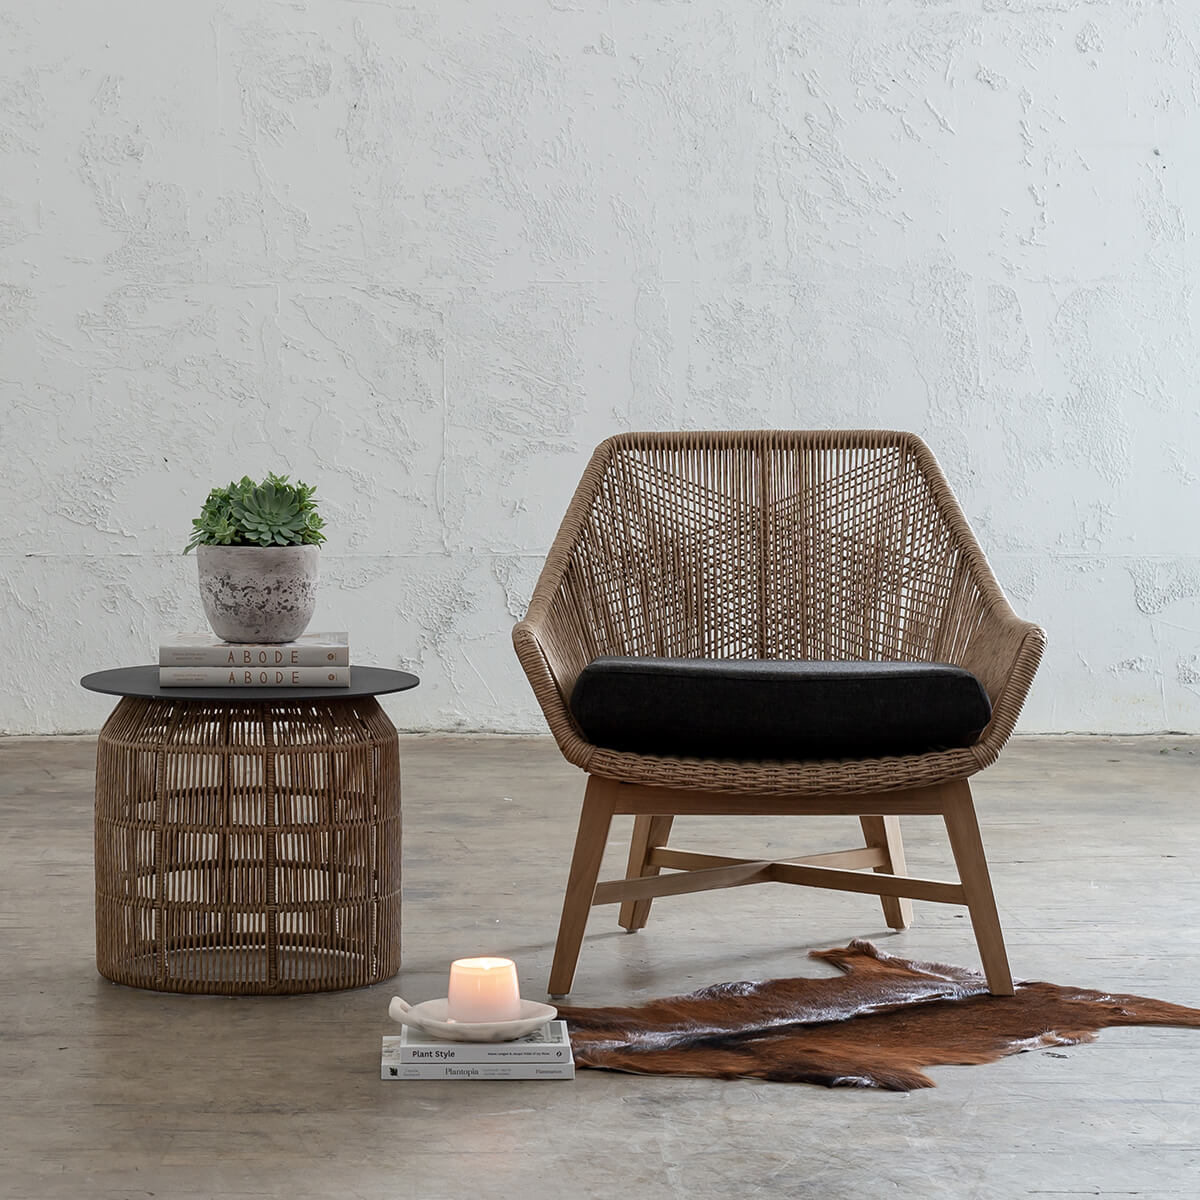 INIZIA WOVEN RATTAN INDOOR OUTDOOR LOUNGE CHAIR  |  WARM HUSK  |  HAMPTONS MODERN RATTAN CHAIR